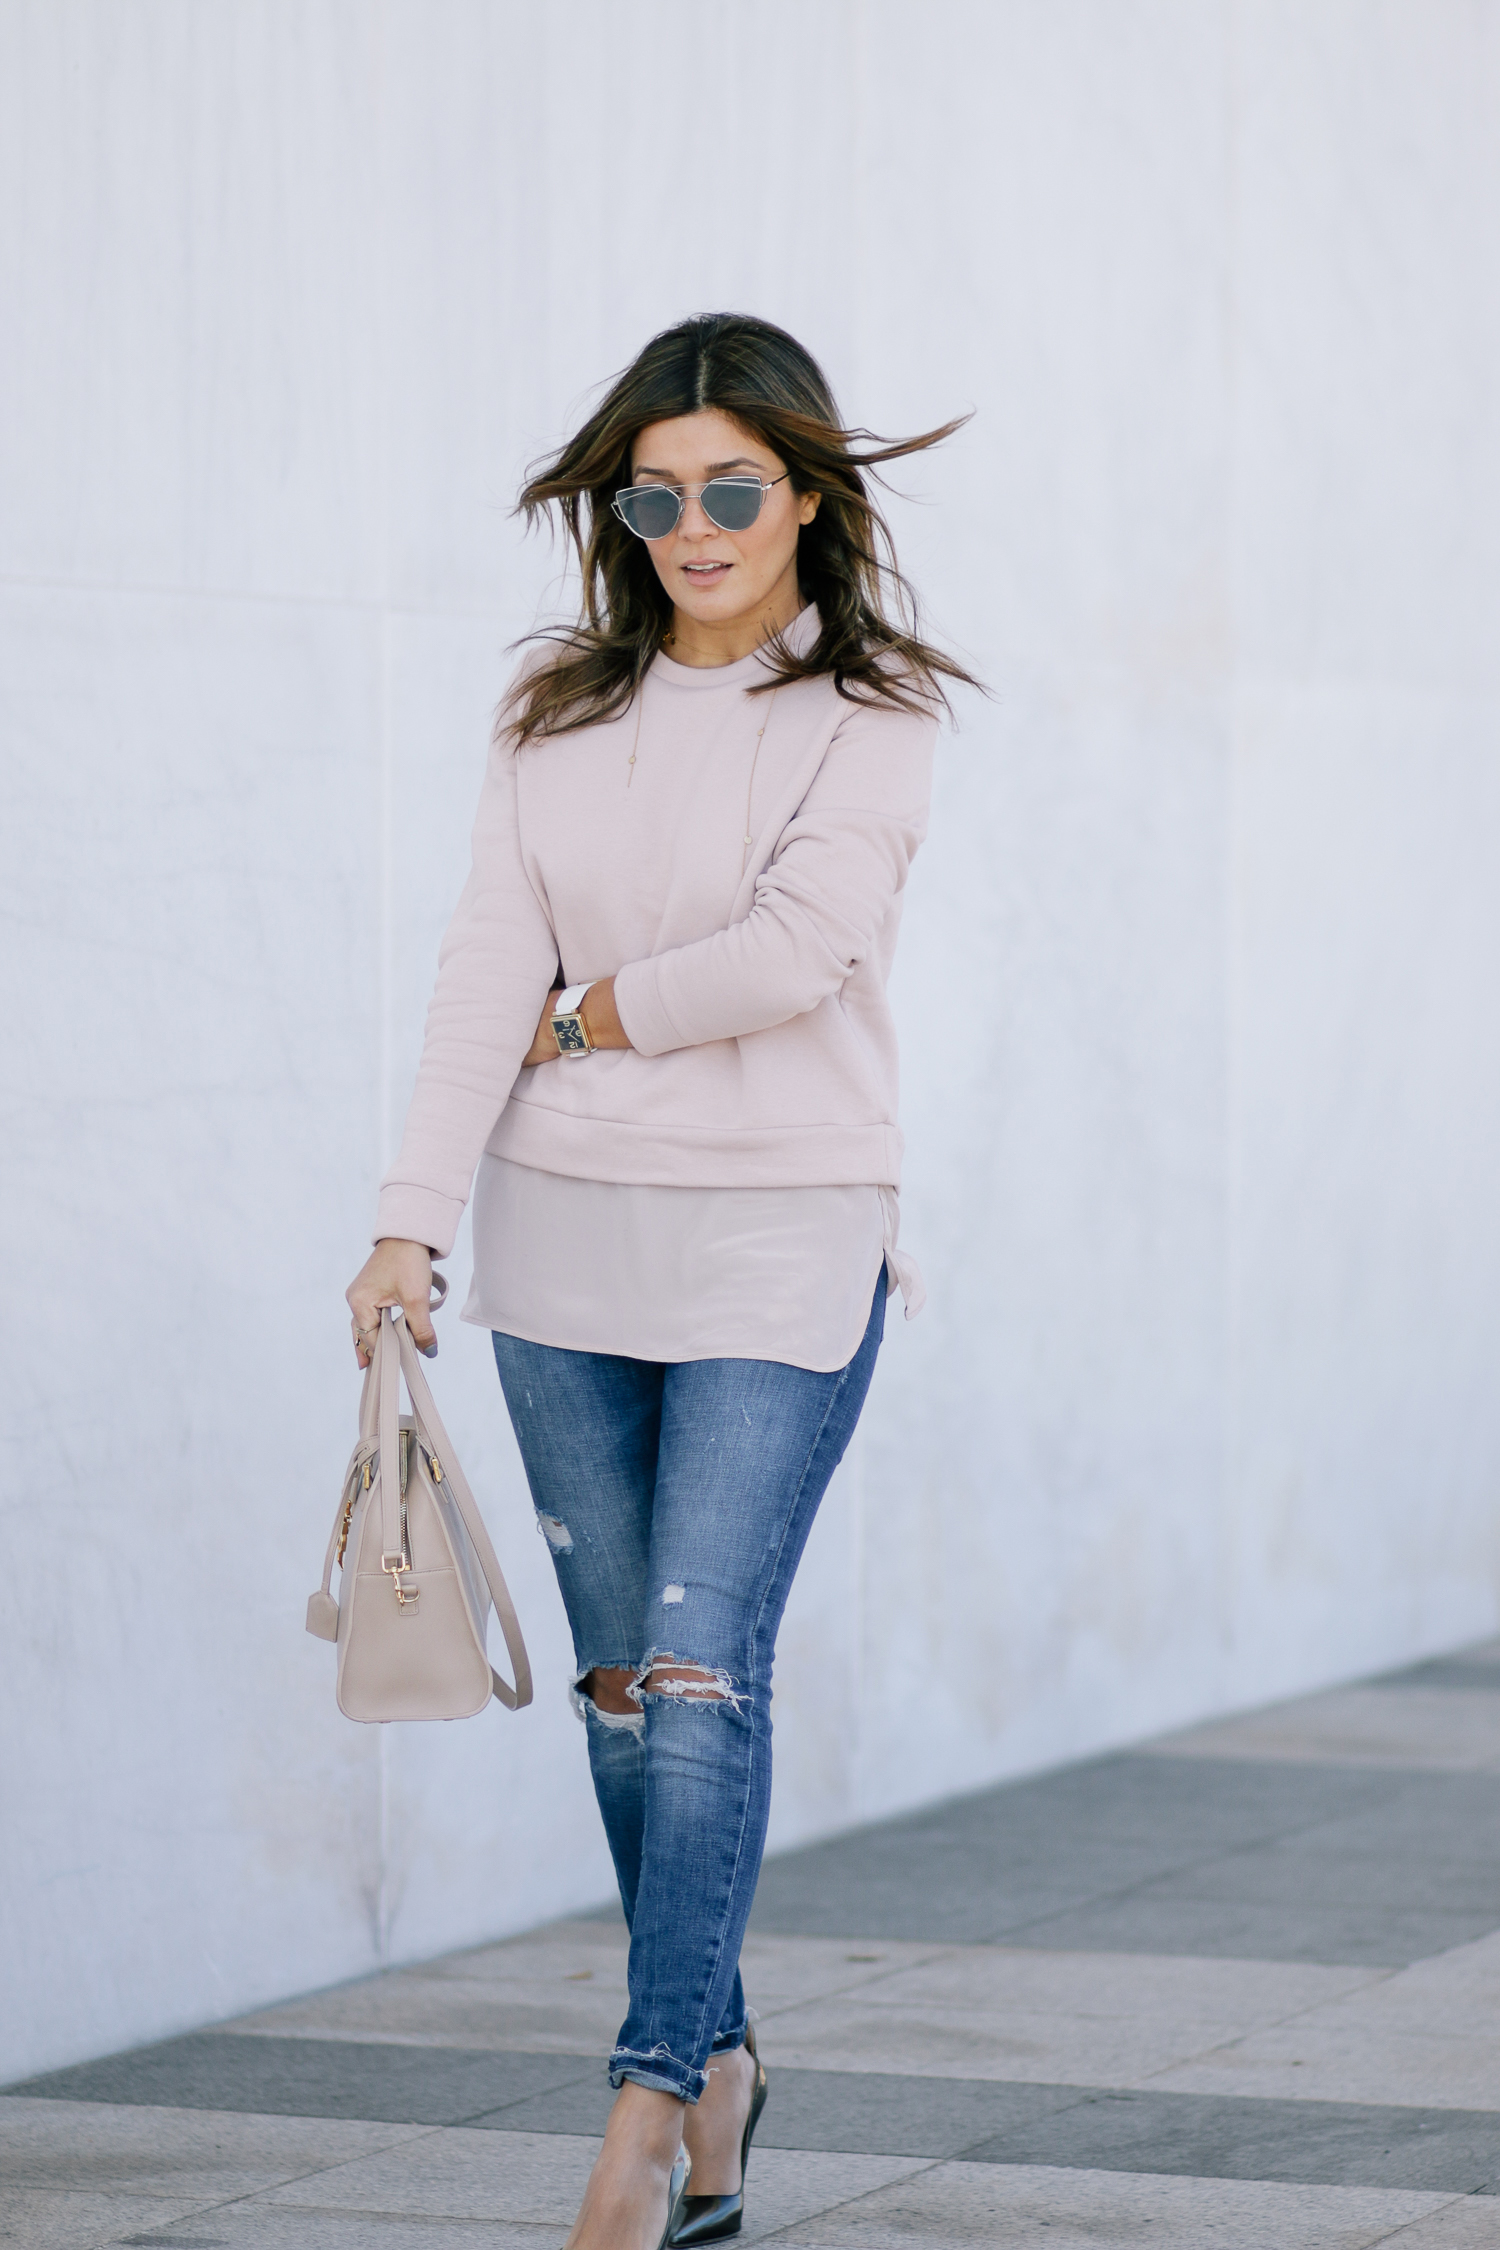 Zara Jeans and Blush Sweatshirt